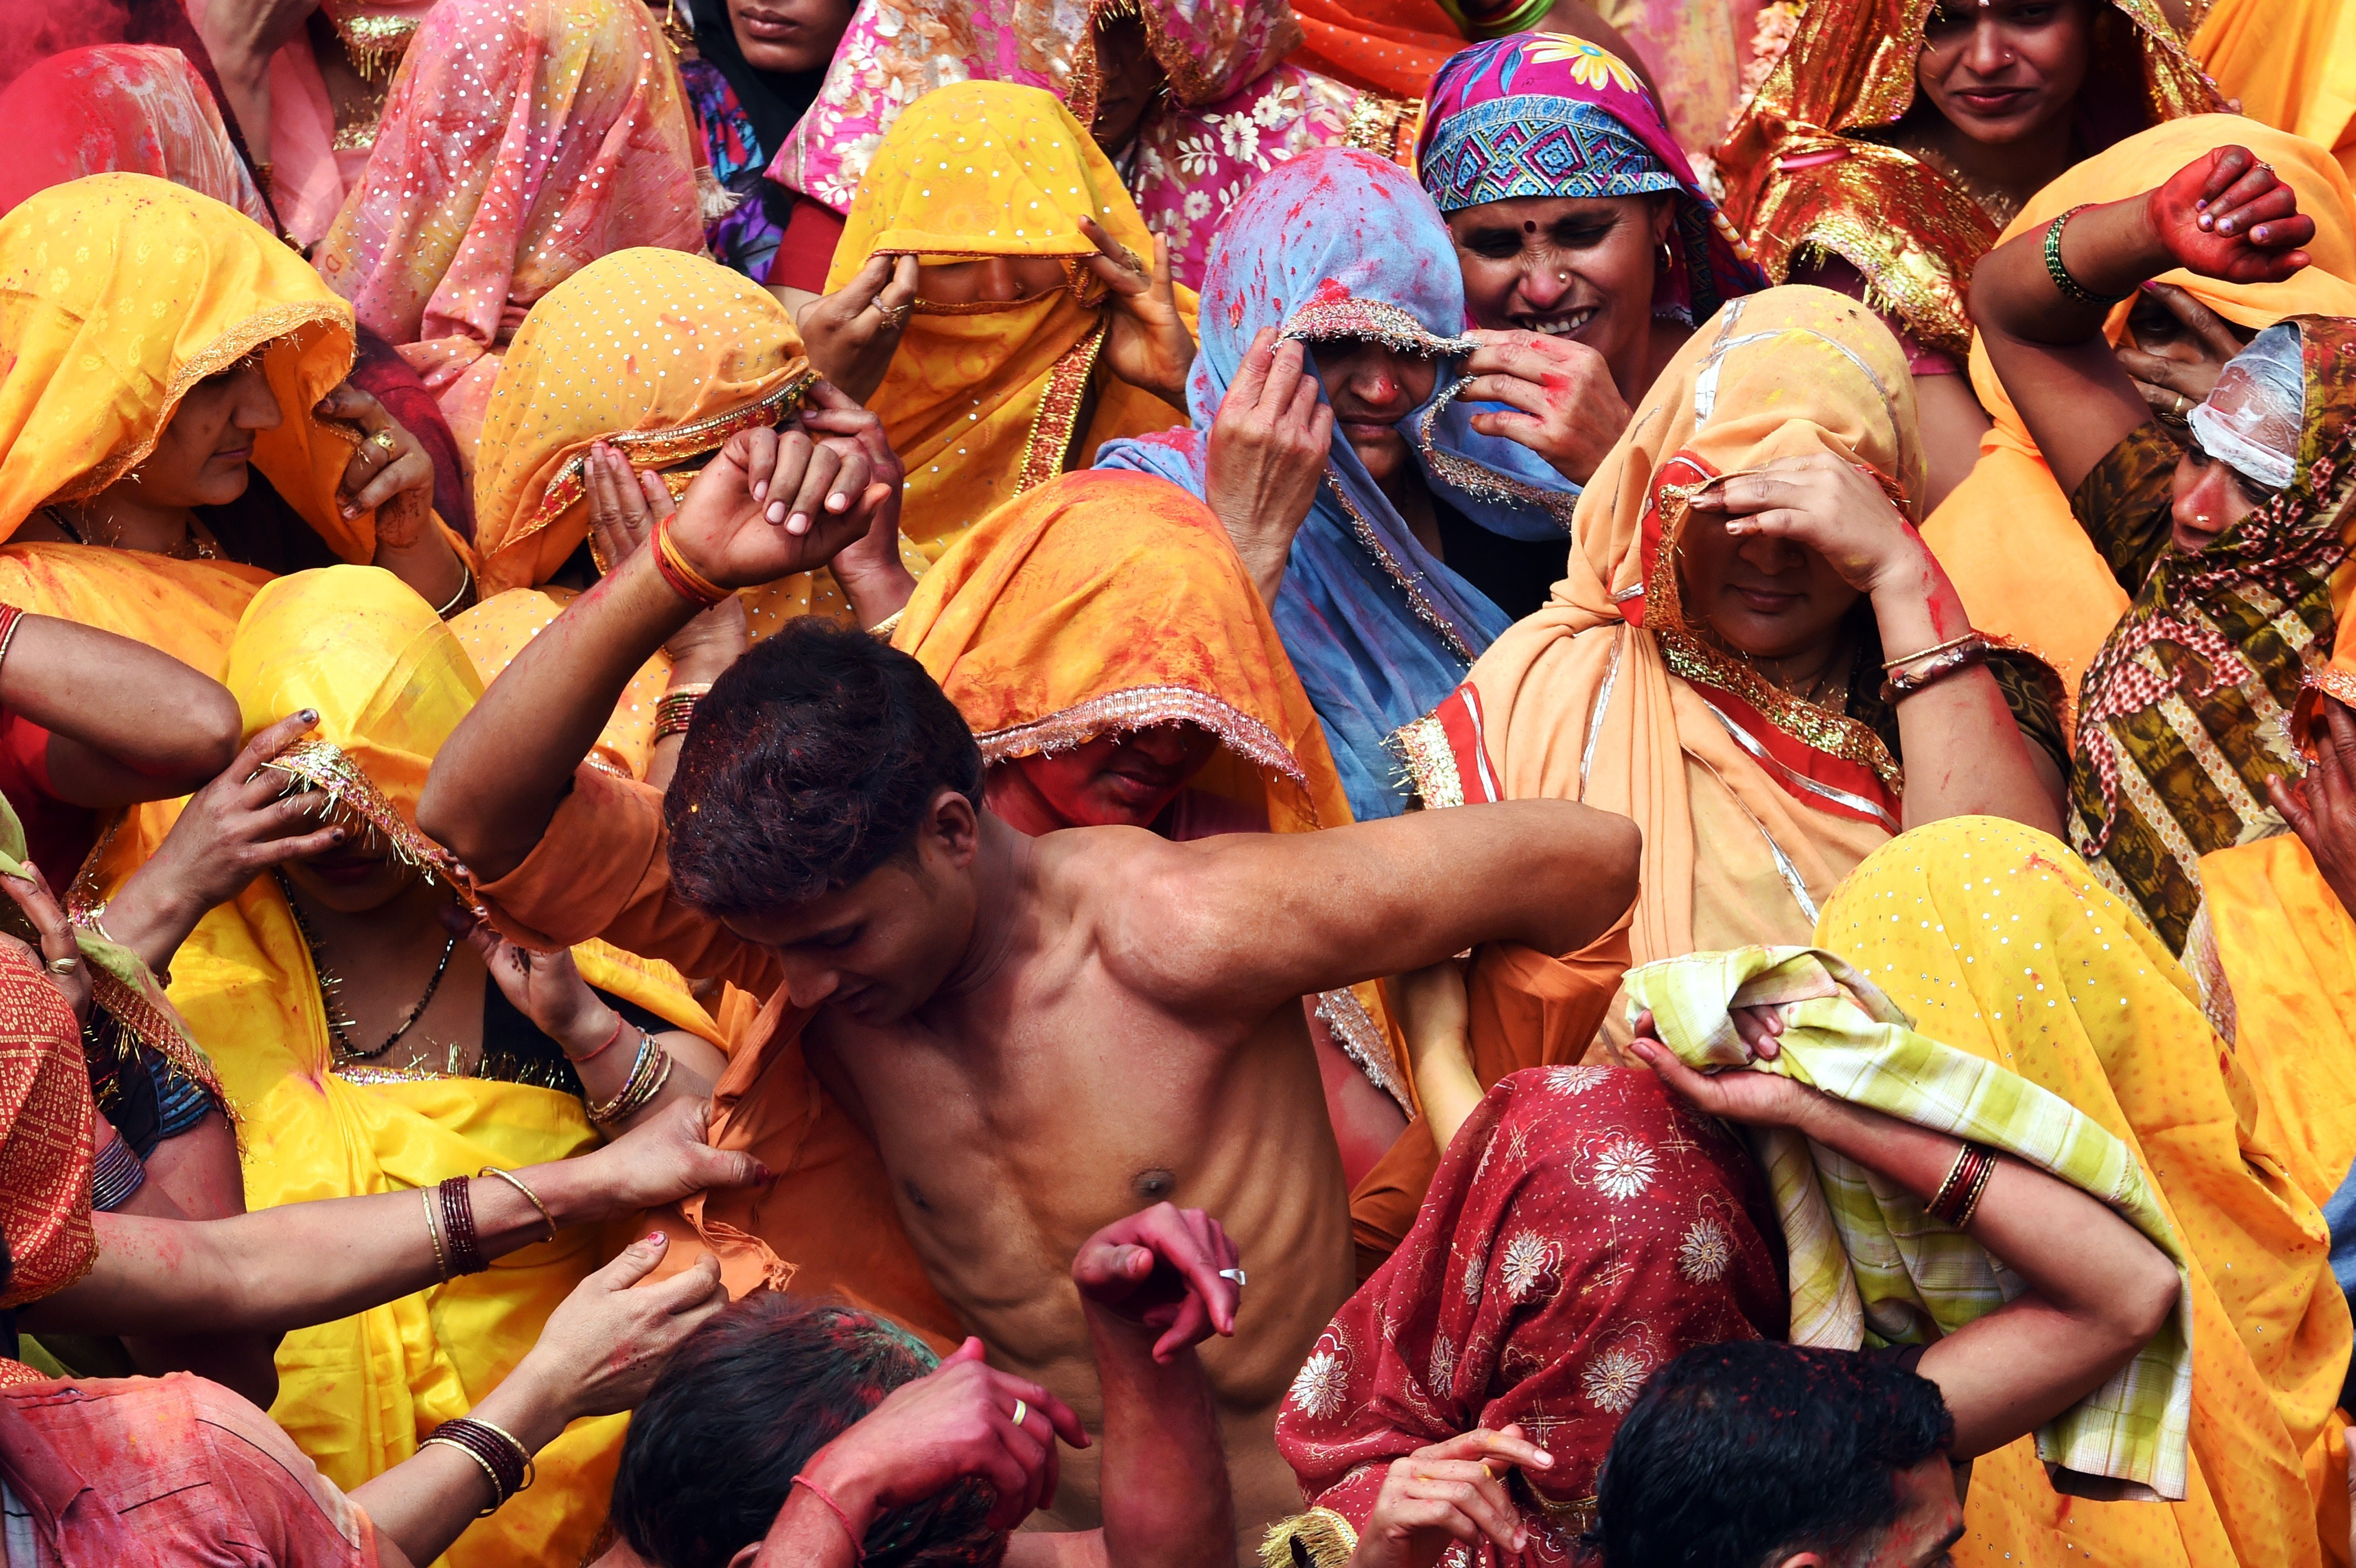 An Indian man is stripped of his shirt as he is surrounded by women at the beginning of the Dadjee ka Huranga festivities in the north Indian town of Baldeo on March 7, 2015. Photo by ROBERTO SCHMIDT/AFP/Getty Images.